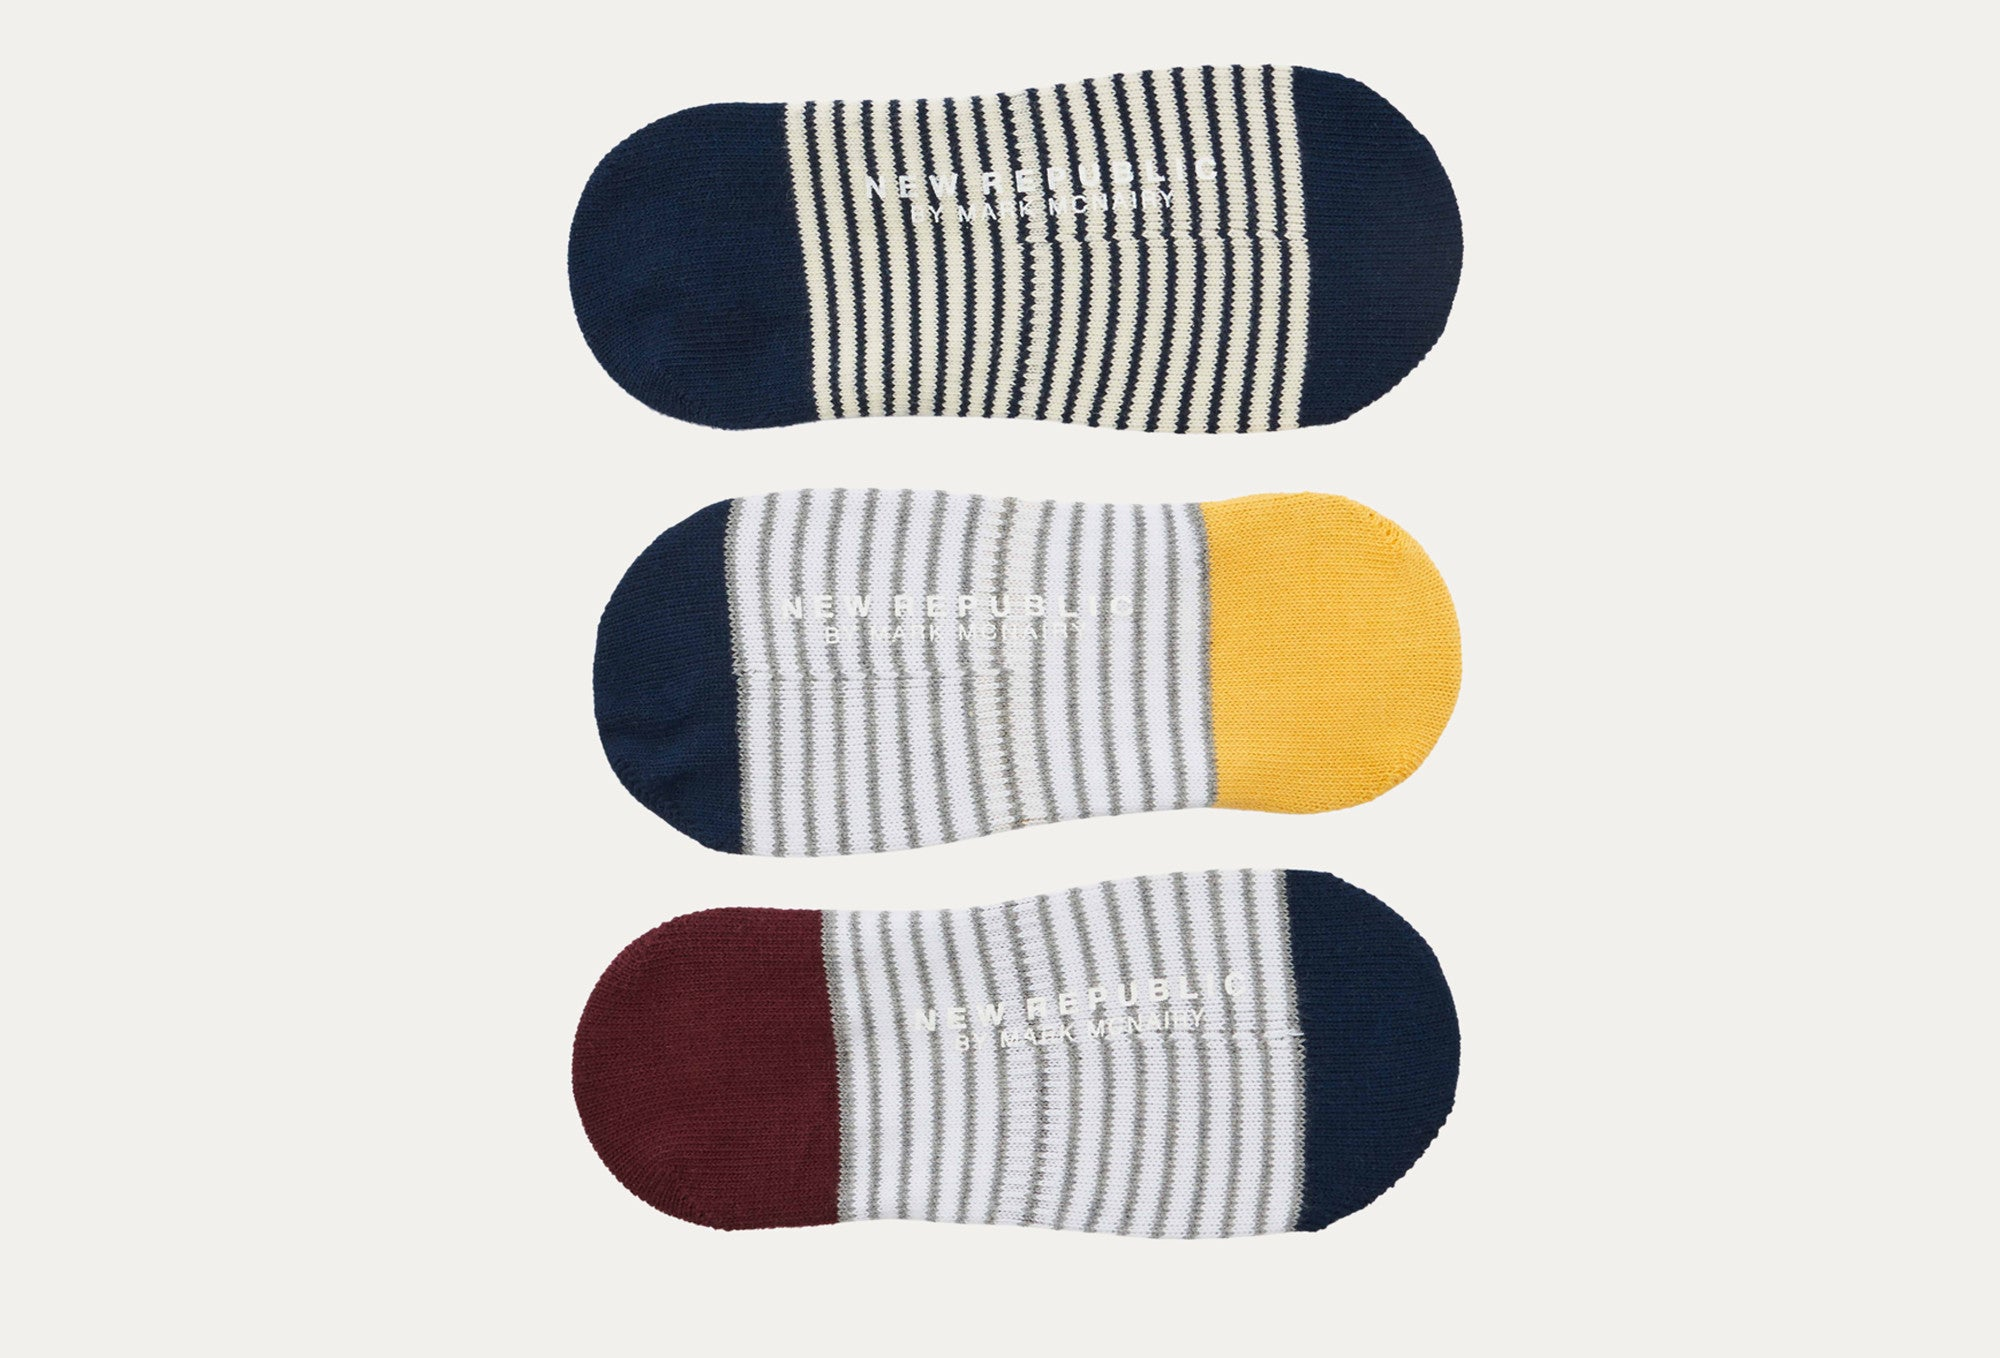 Dorchester 3-Pack No-Show Socks